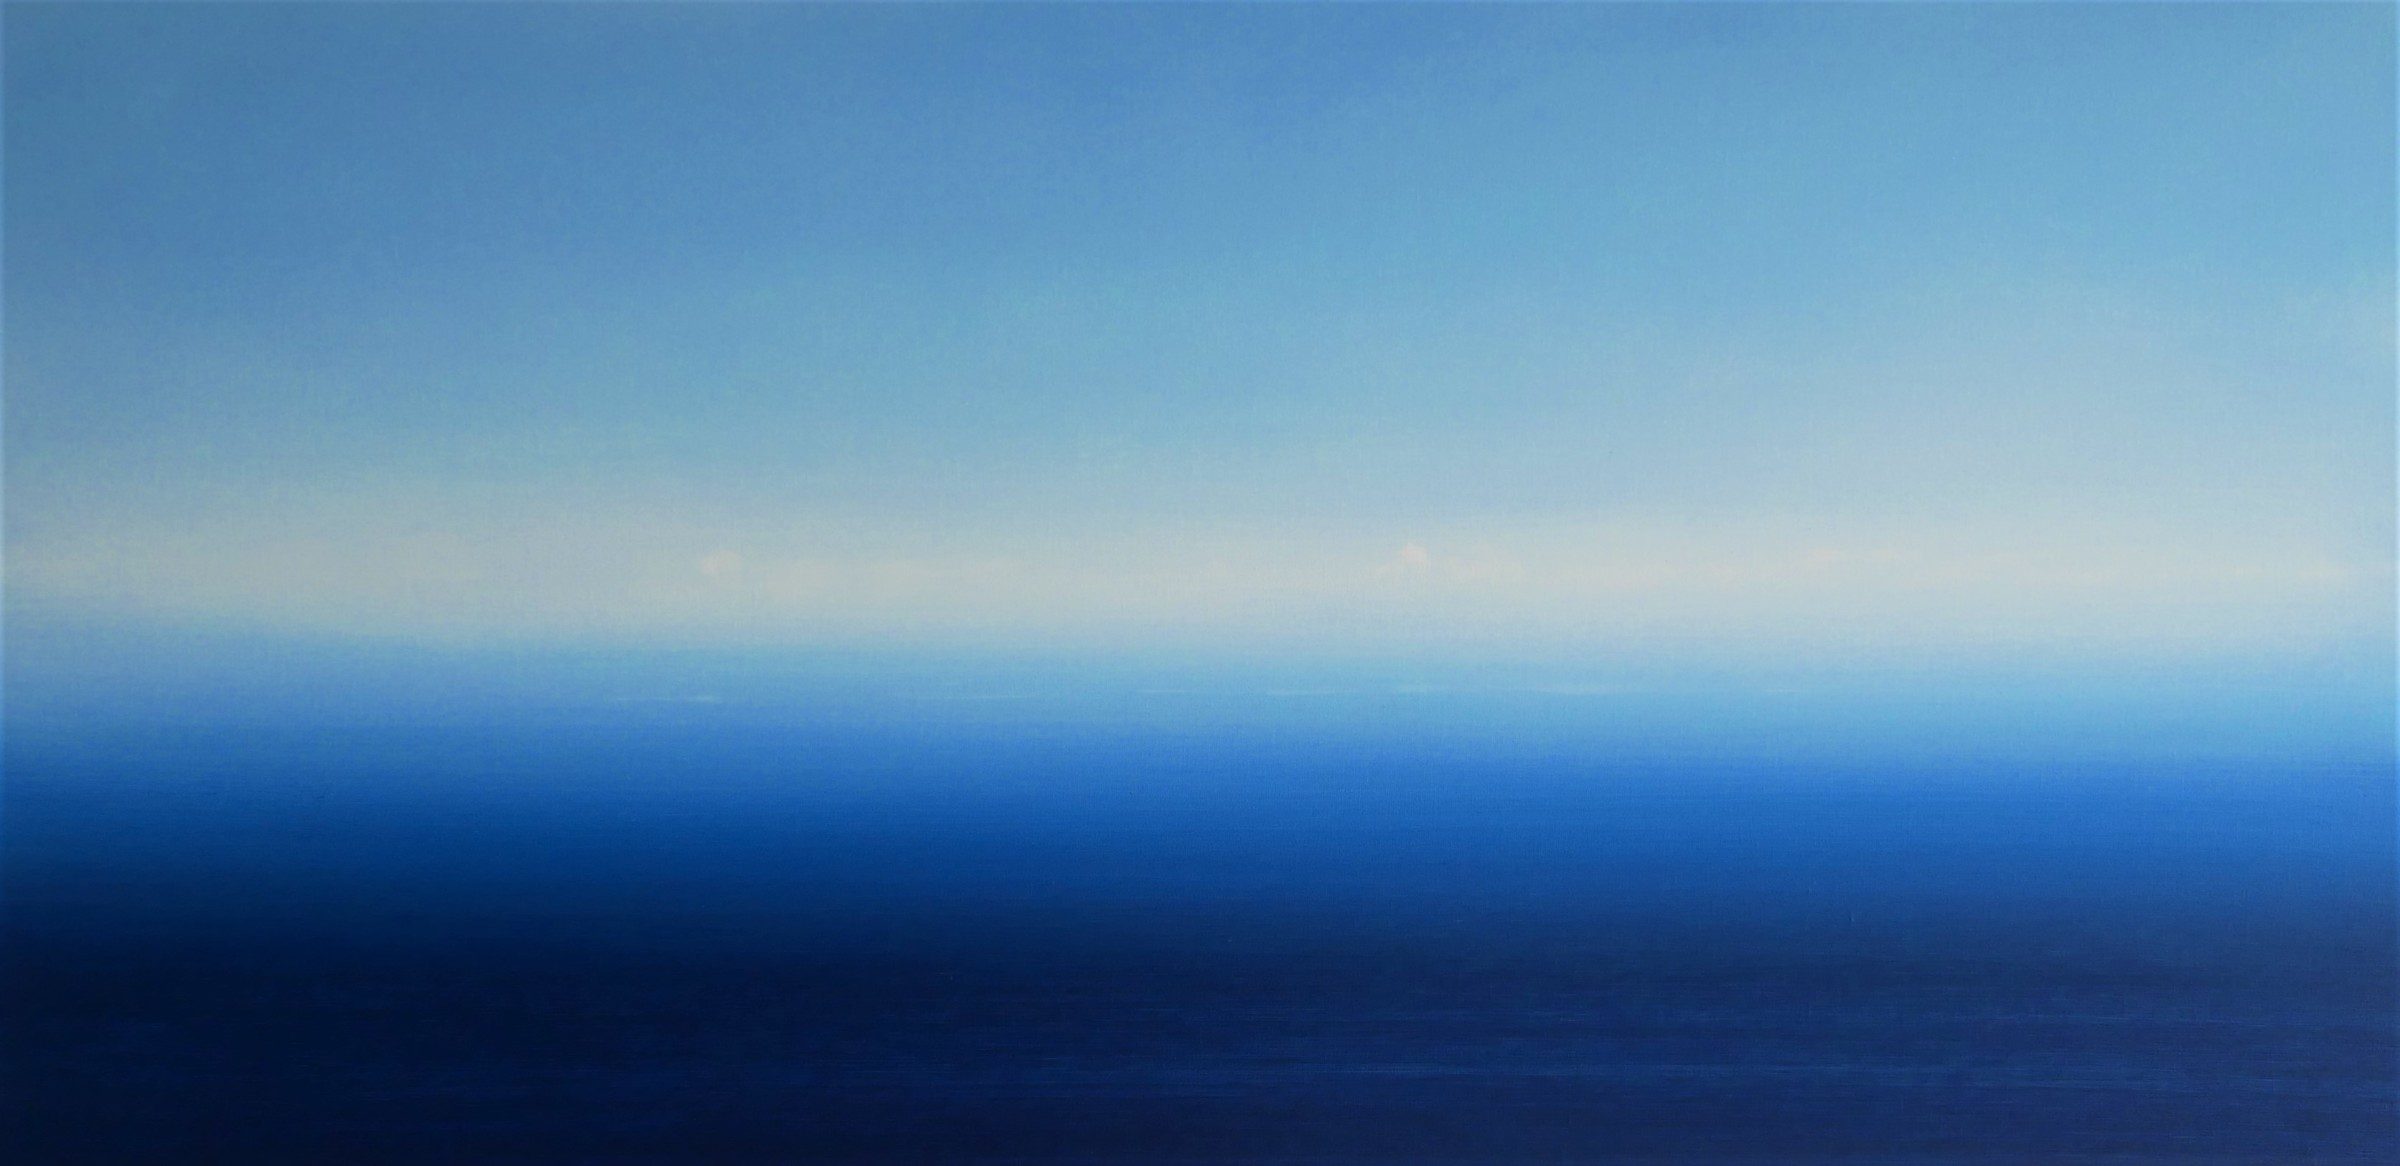 "<span class=""link fancybox-details-link""><a href=""/artists/78-martyn-perryman/works/7322-martyn-perryman-calming-skies-st-ives-1-2020/"">View Detail Page</a></span><div class=""artist""><strong>Martyn Perryman</strong></div> b. 1963 <div class=""title""><em>Calming Skies, St Ives 1</em>, 2020</div> <div class=""medium"">Oil on canvas</div> <div class=""dimensions"">h. 40 cm x w. 80 cm</div><div class=""price"">£840.00</div><div class=""copyright_line"">Own Art: £84 x 10 months, 0% APR</div>"